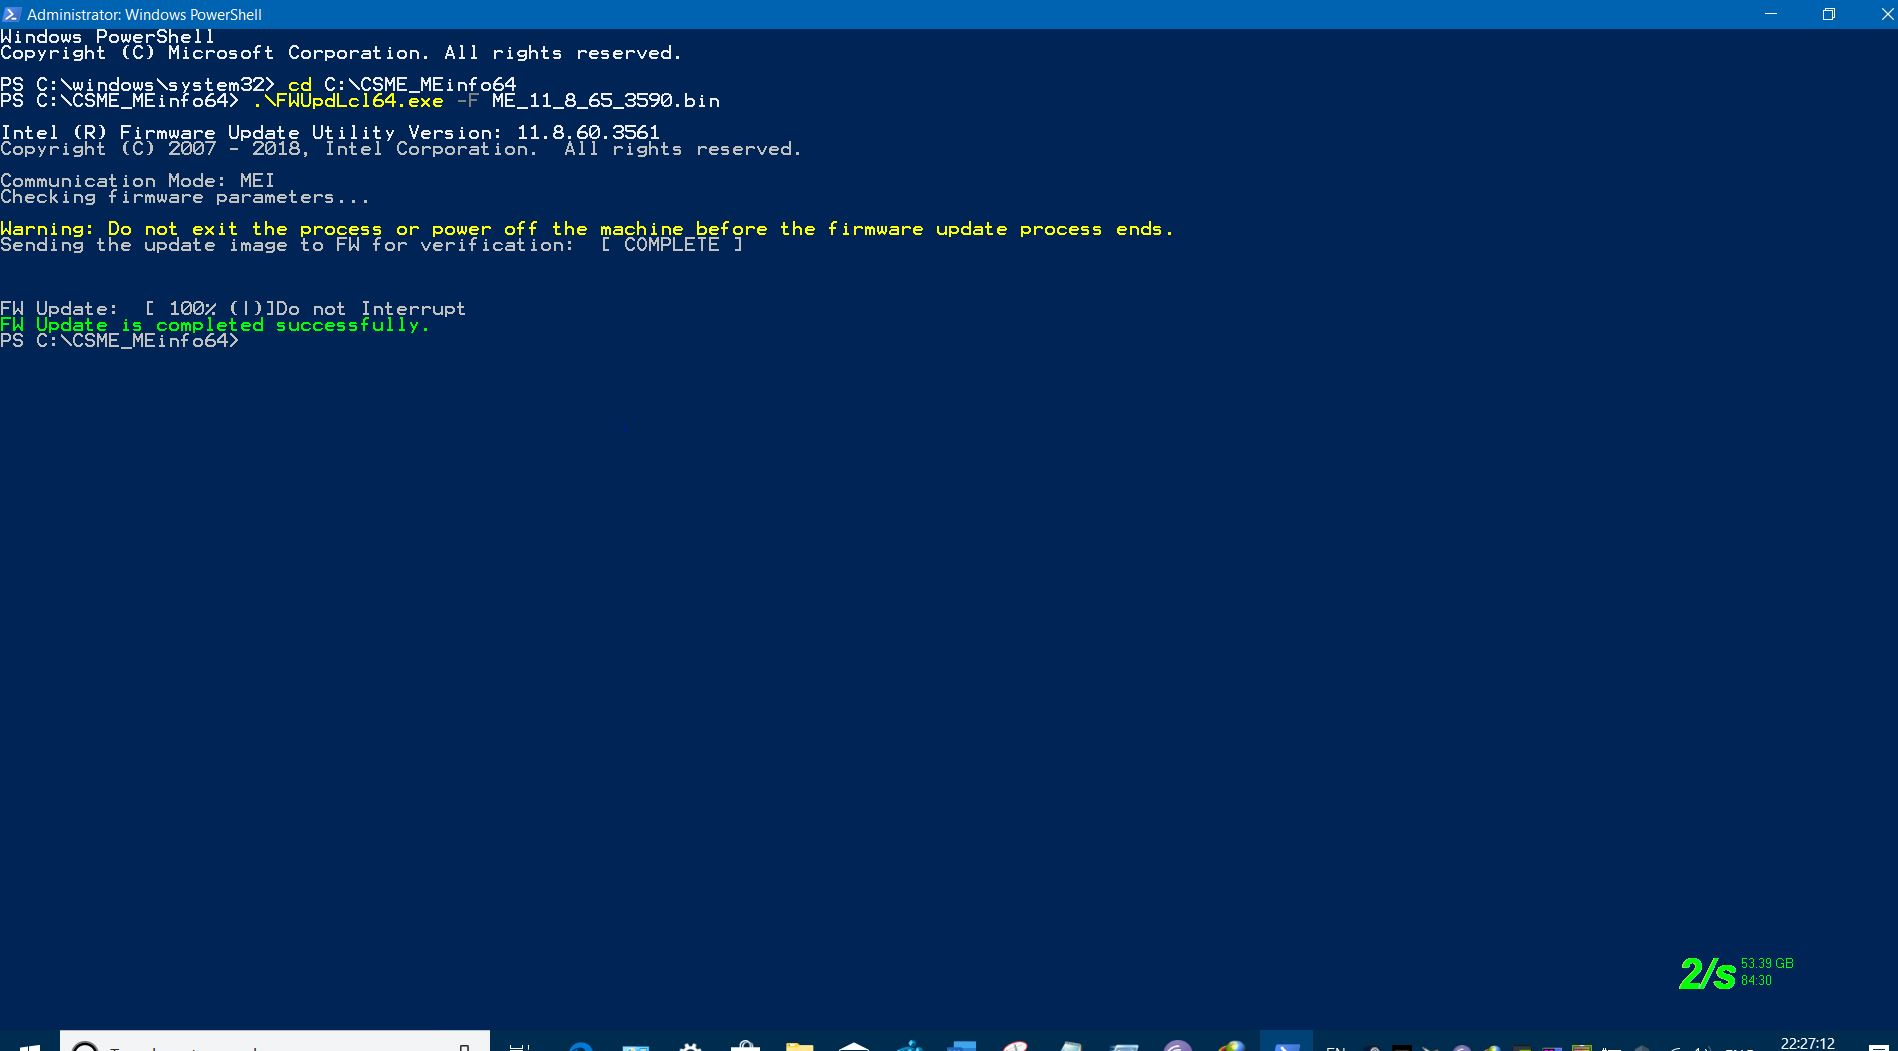 UPDATED INTEL MANAGEMENT ENGINE FIRMWARE 11 8 65 3590 DATED